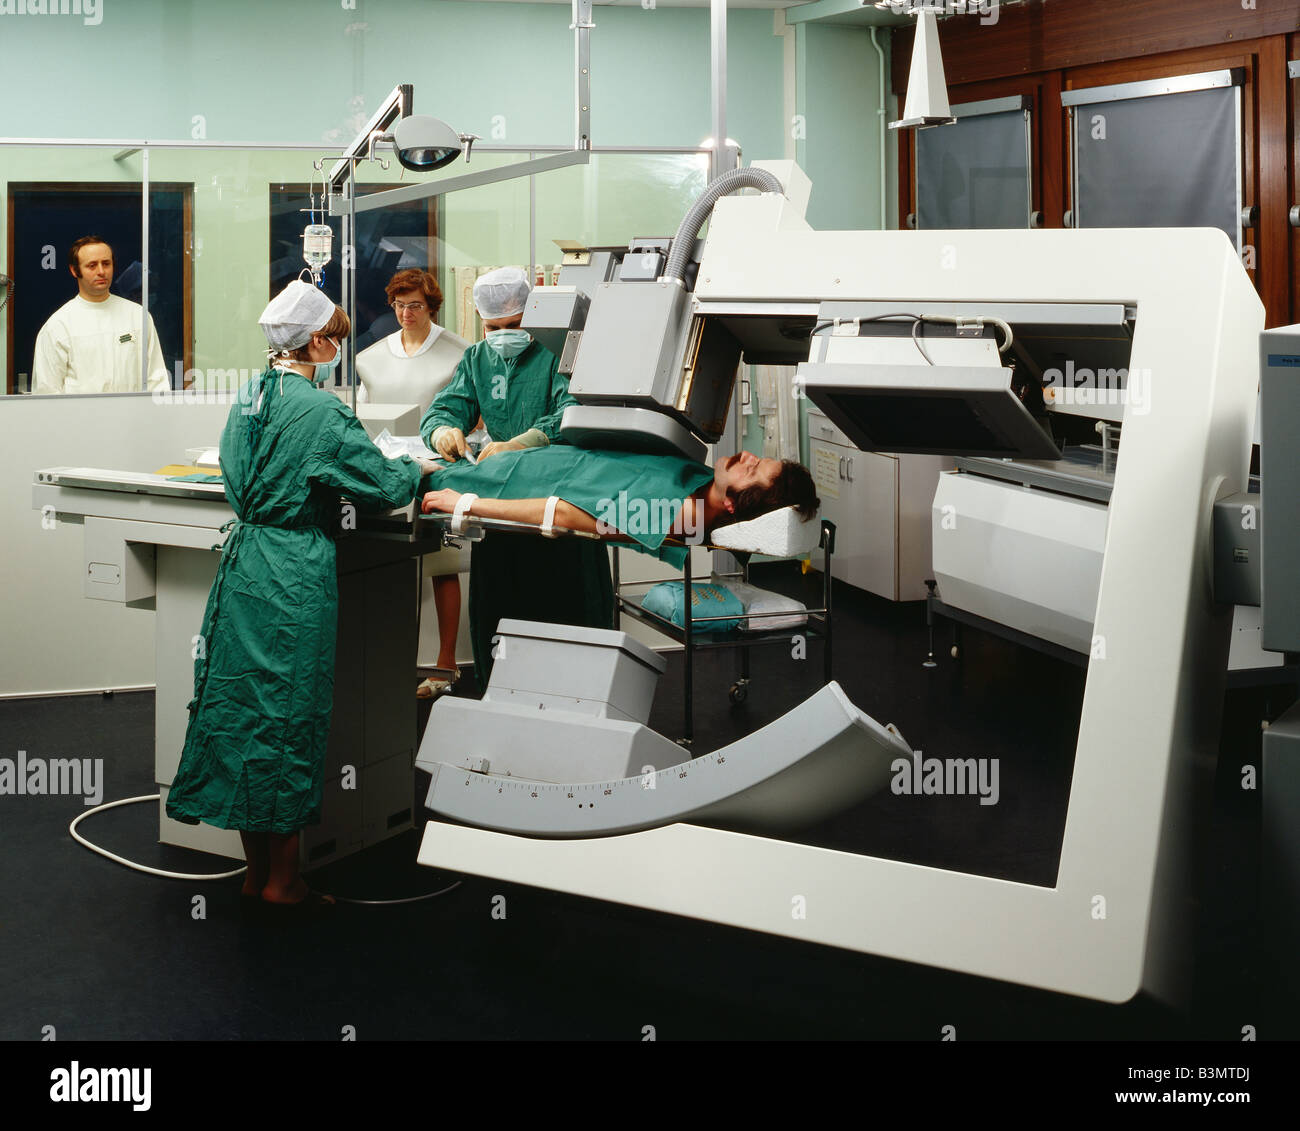 SURGEONS PERFORMING AN ANGIOGRAPHY IN OPERATION ROOM - Stock Image